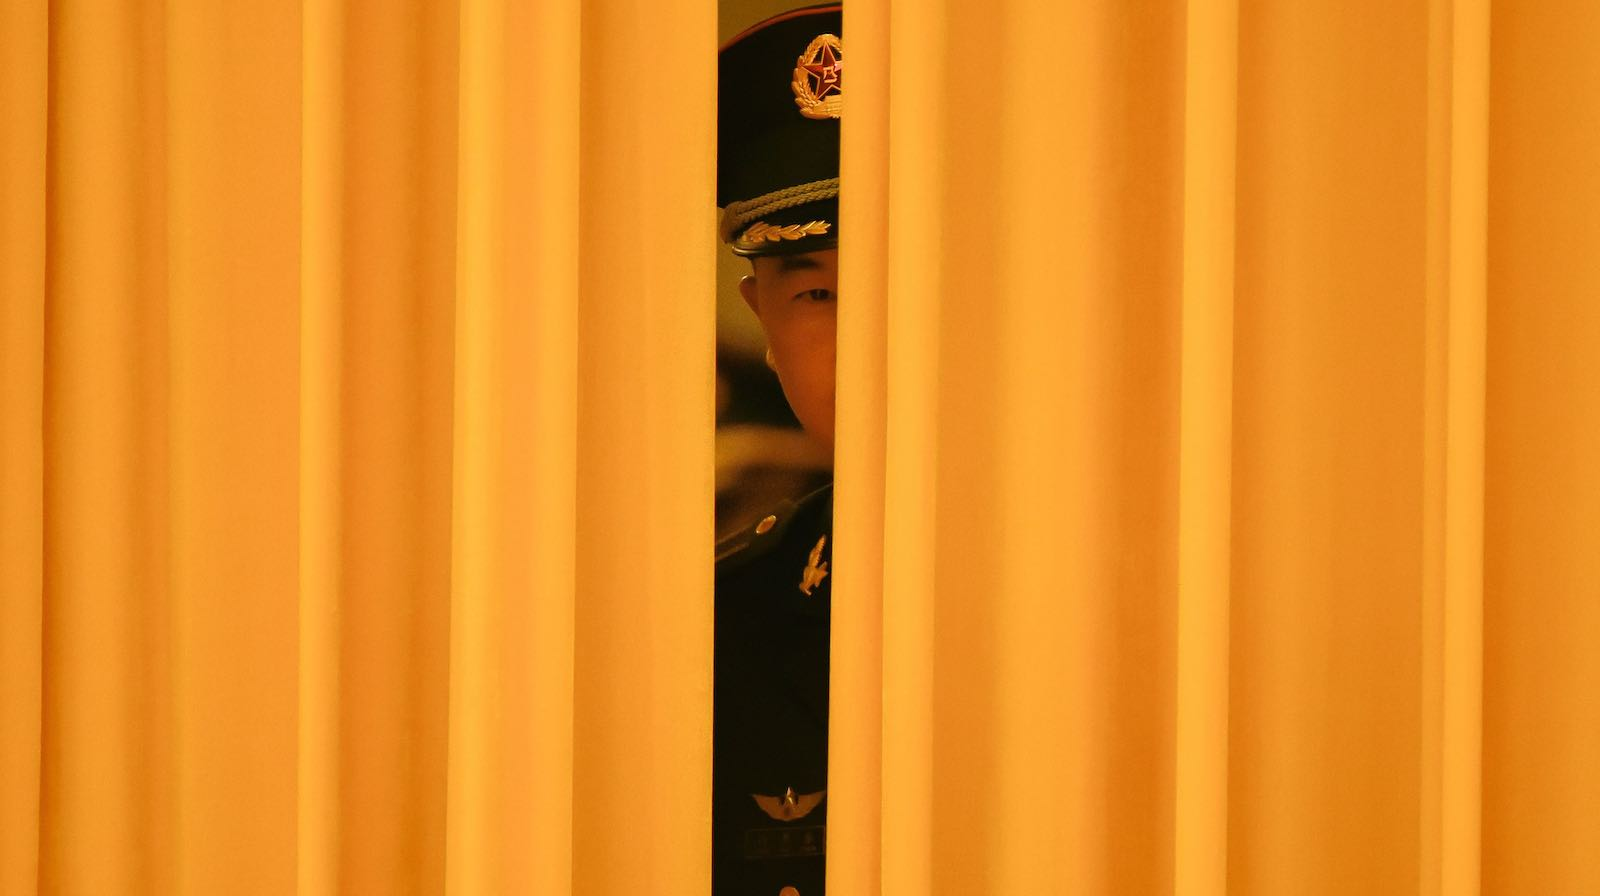 Chinese honour guards prepare for the arrival of China's President Xi Jinping and El Salvador's President Salvador Sanchez Ceren at the Great Hall of the People in Beijing in November 2018 (Photo: Wang Zhao via Getty)